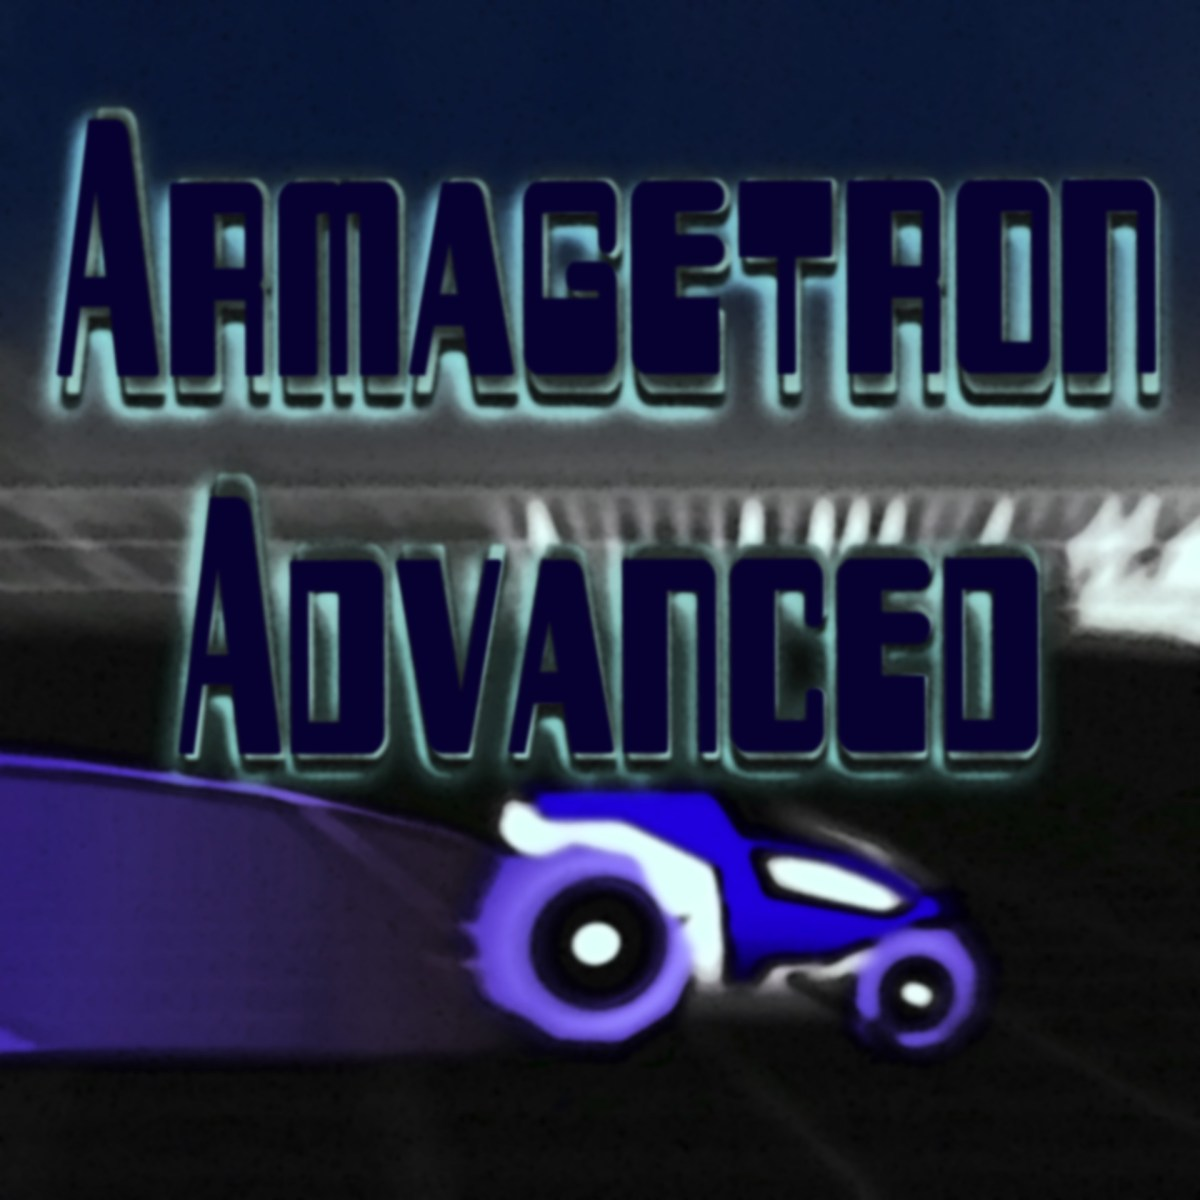 Armagetron Advanced case cover